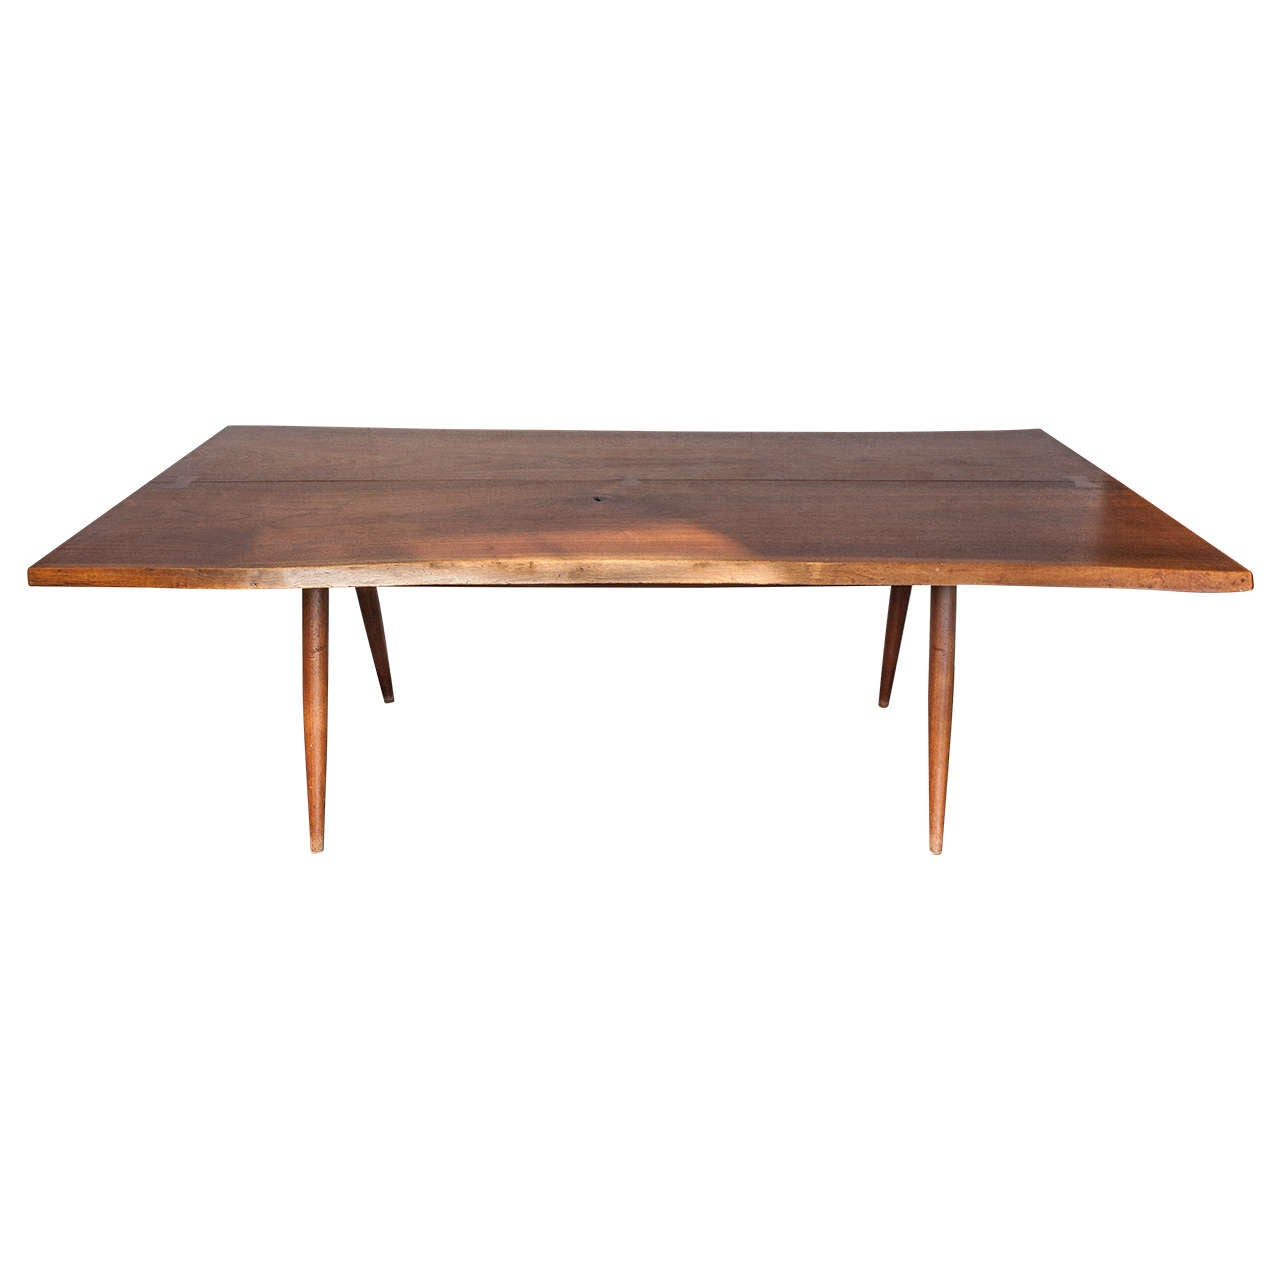 20th Century George Nakashima Dining Table